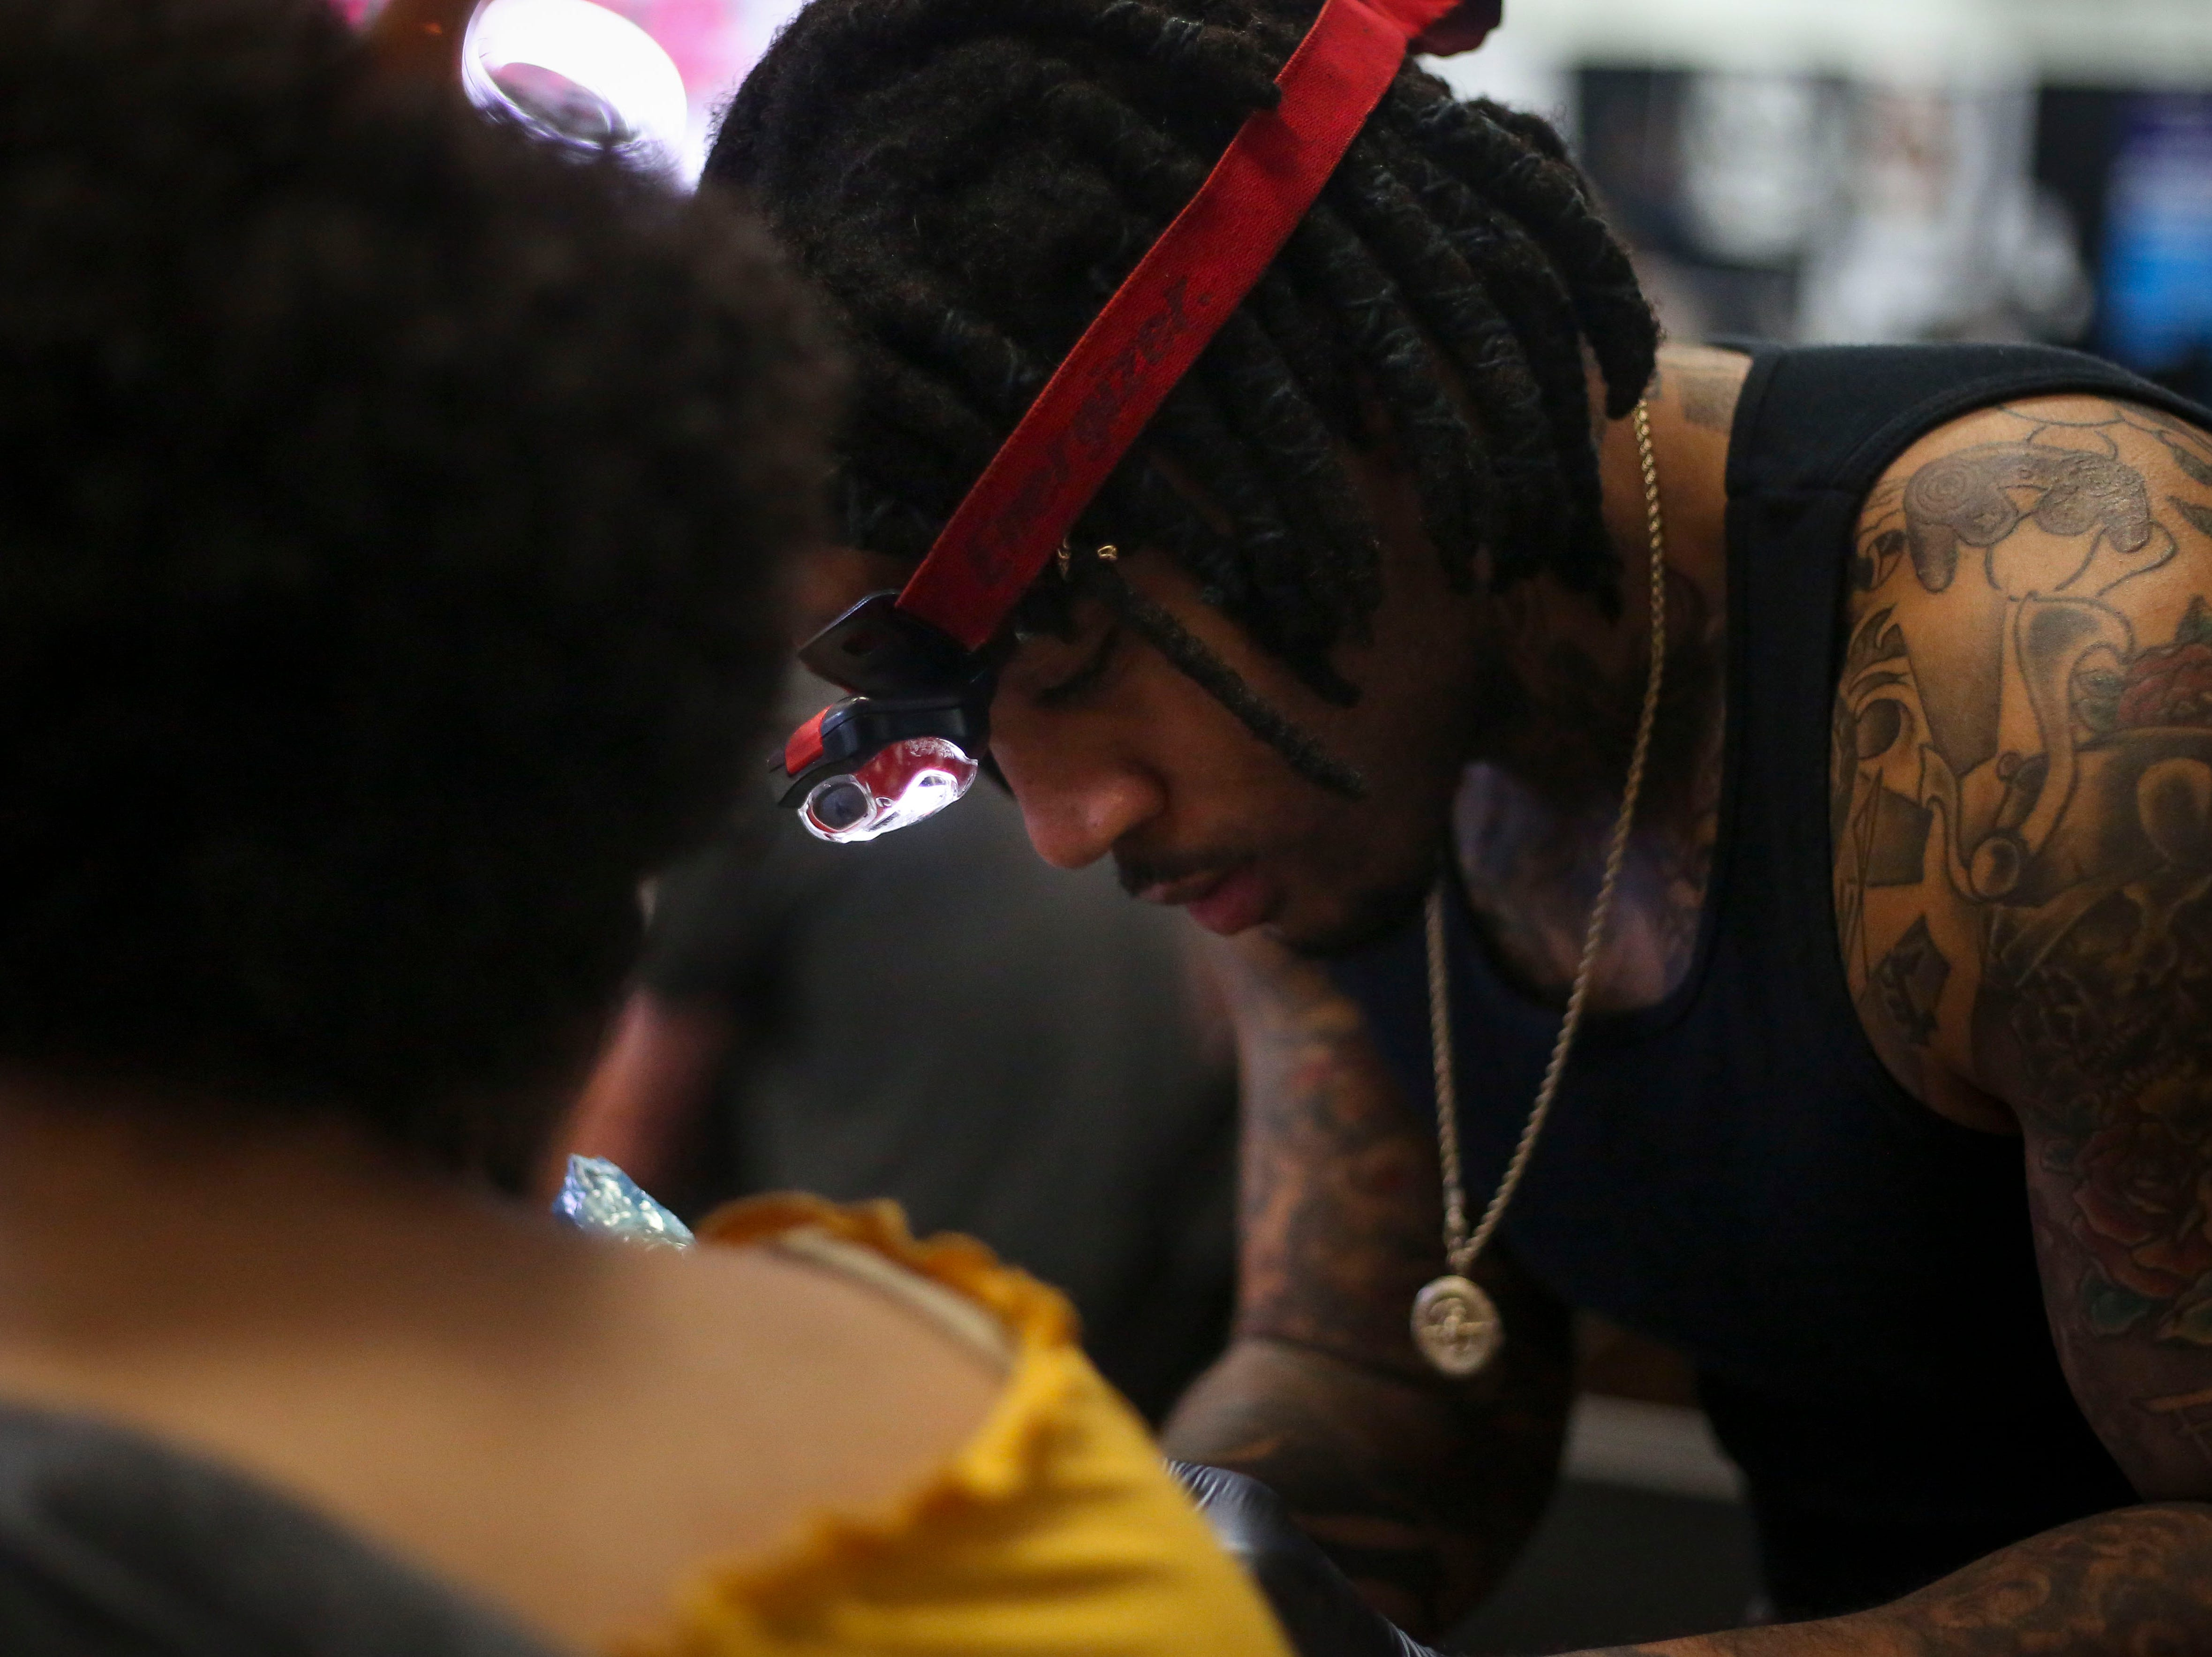 Dexter Banks tattoos Kelly Bradford during the 8th Annual Louisville Tattoo Arts Convention put on by Villain Arts at the Kentucky Expo Center in Louisville, Ky. on Saturday, April 13, 2019.